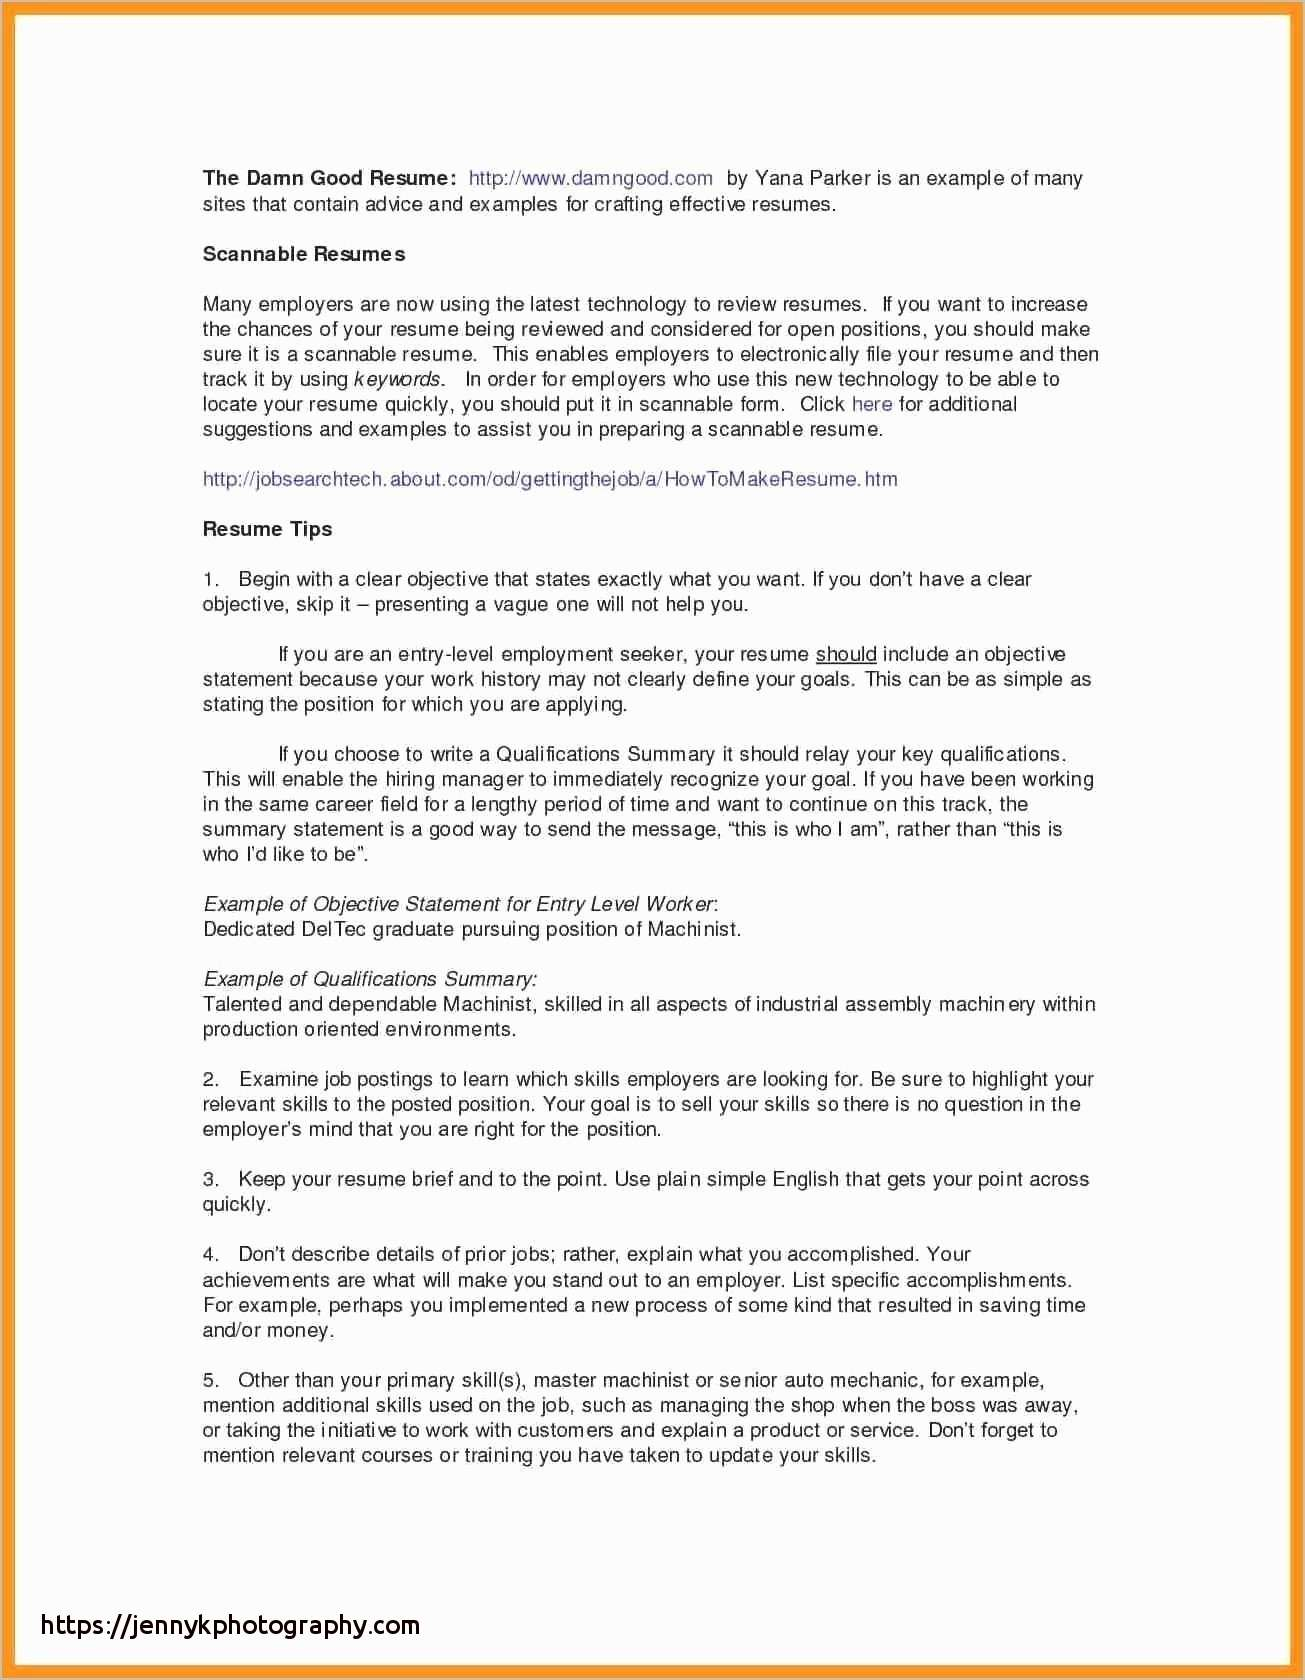 Resume for Videographer - 36 Inspirational Video Editing Cover Letter